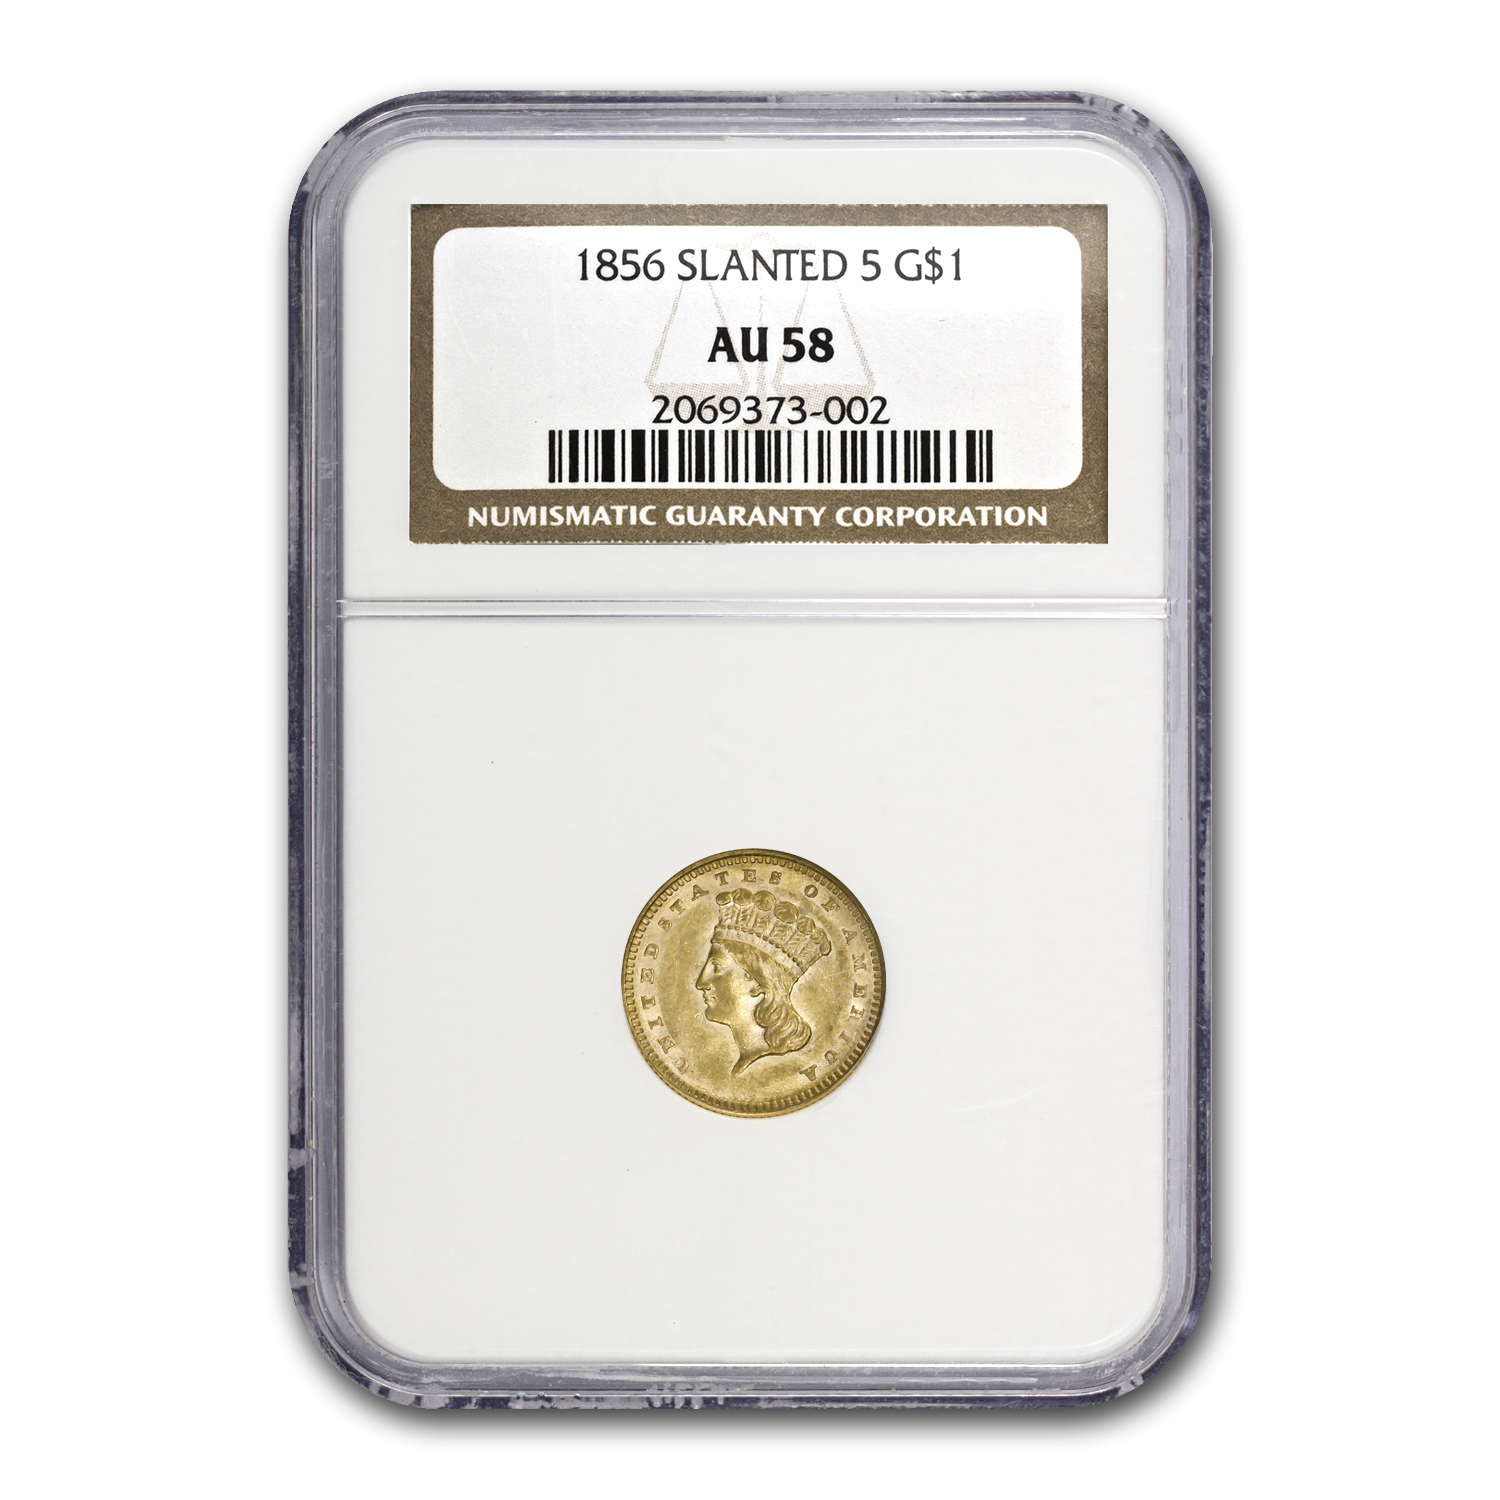 1856 $1 Indian Head Gold Slanted 5 AU-58 NGC